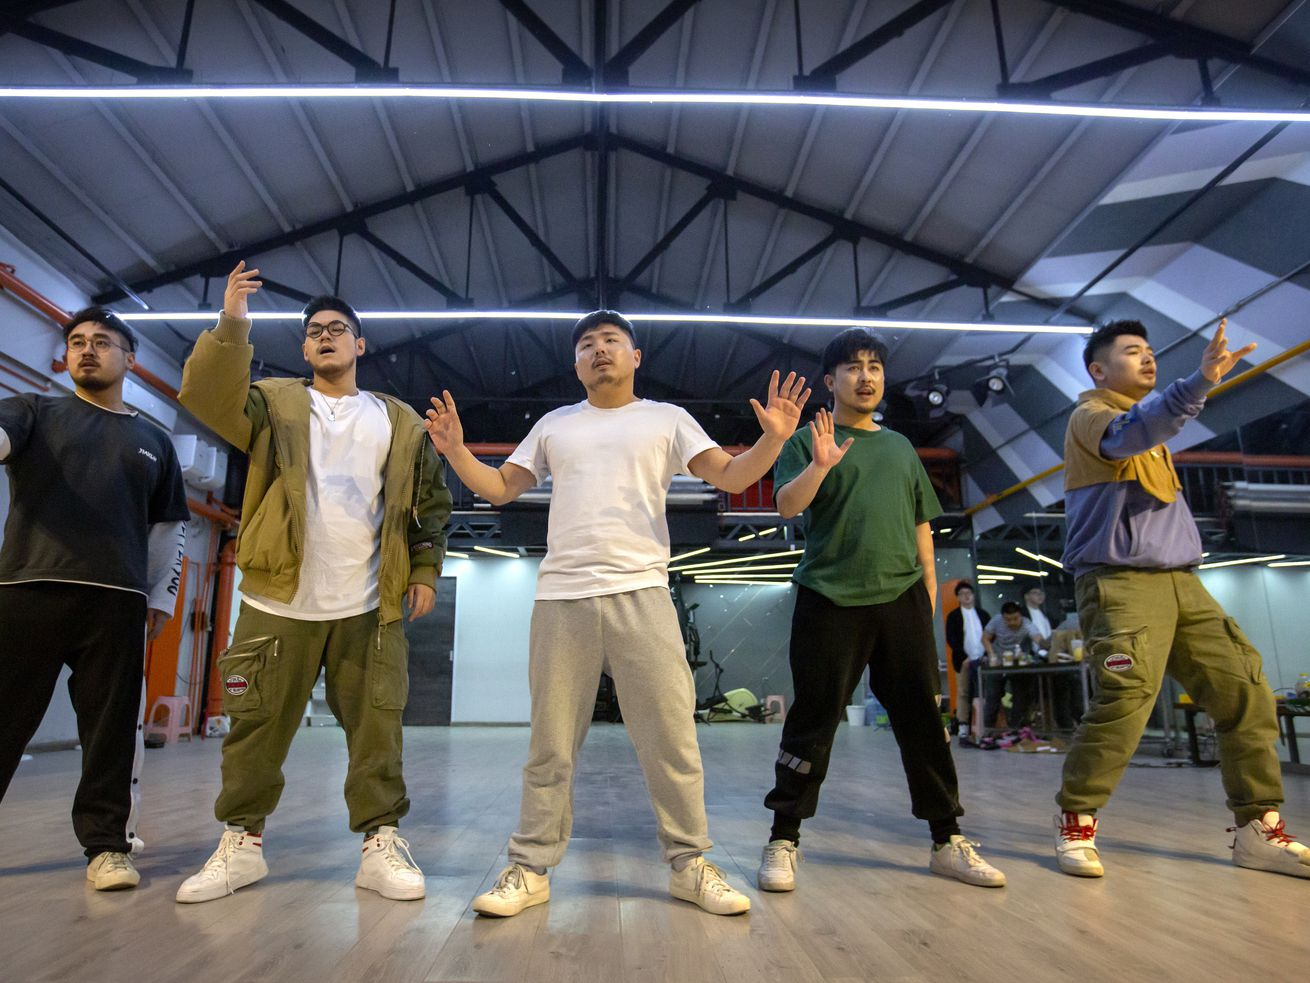 """Members of the Chinese music group Produce Pandas — DING (from left), Husky, Otter, Cass and Mr. 17 — strike a pose while practicing dance choreography during rehearsals in Beijing earlier this month. The groups proudly call themselves """"the first plus-sized boy band in China."""""""